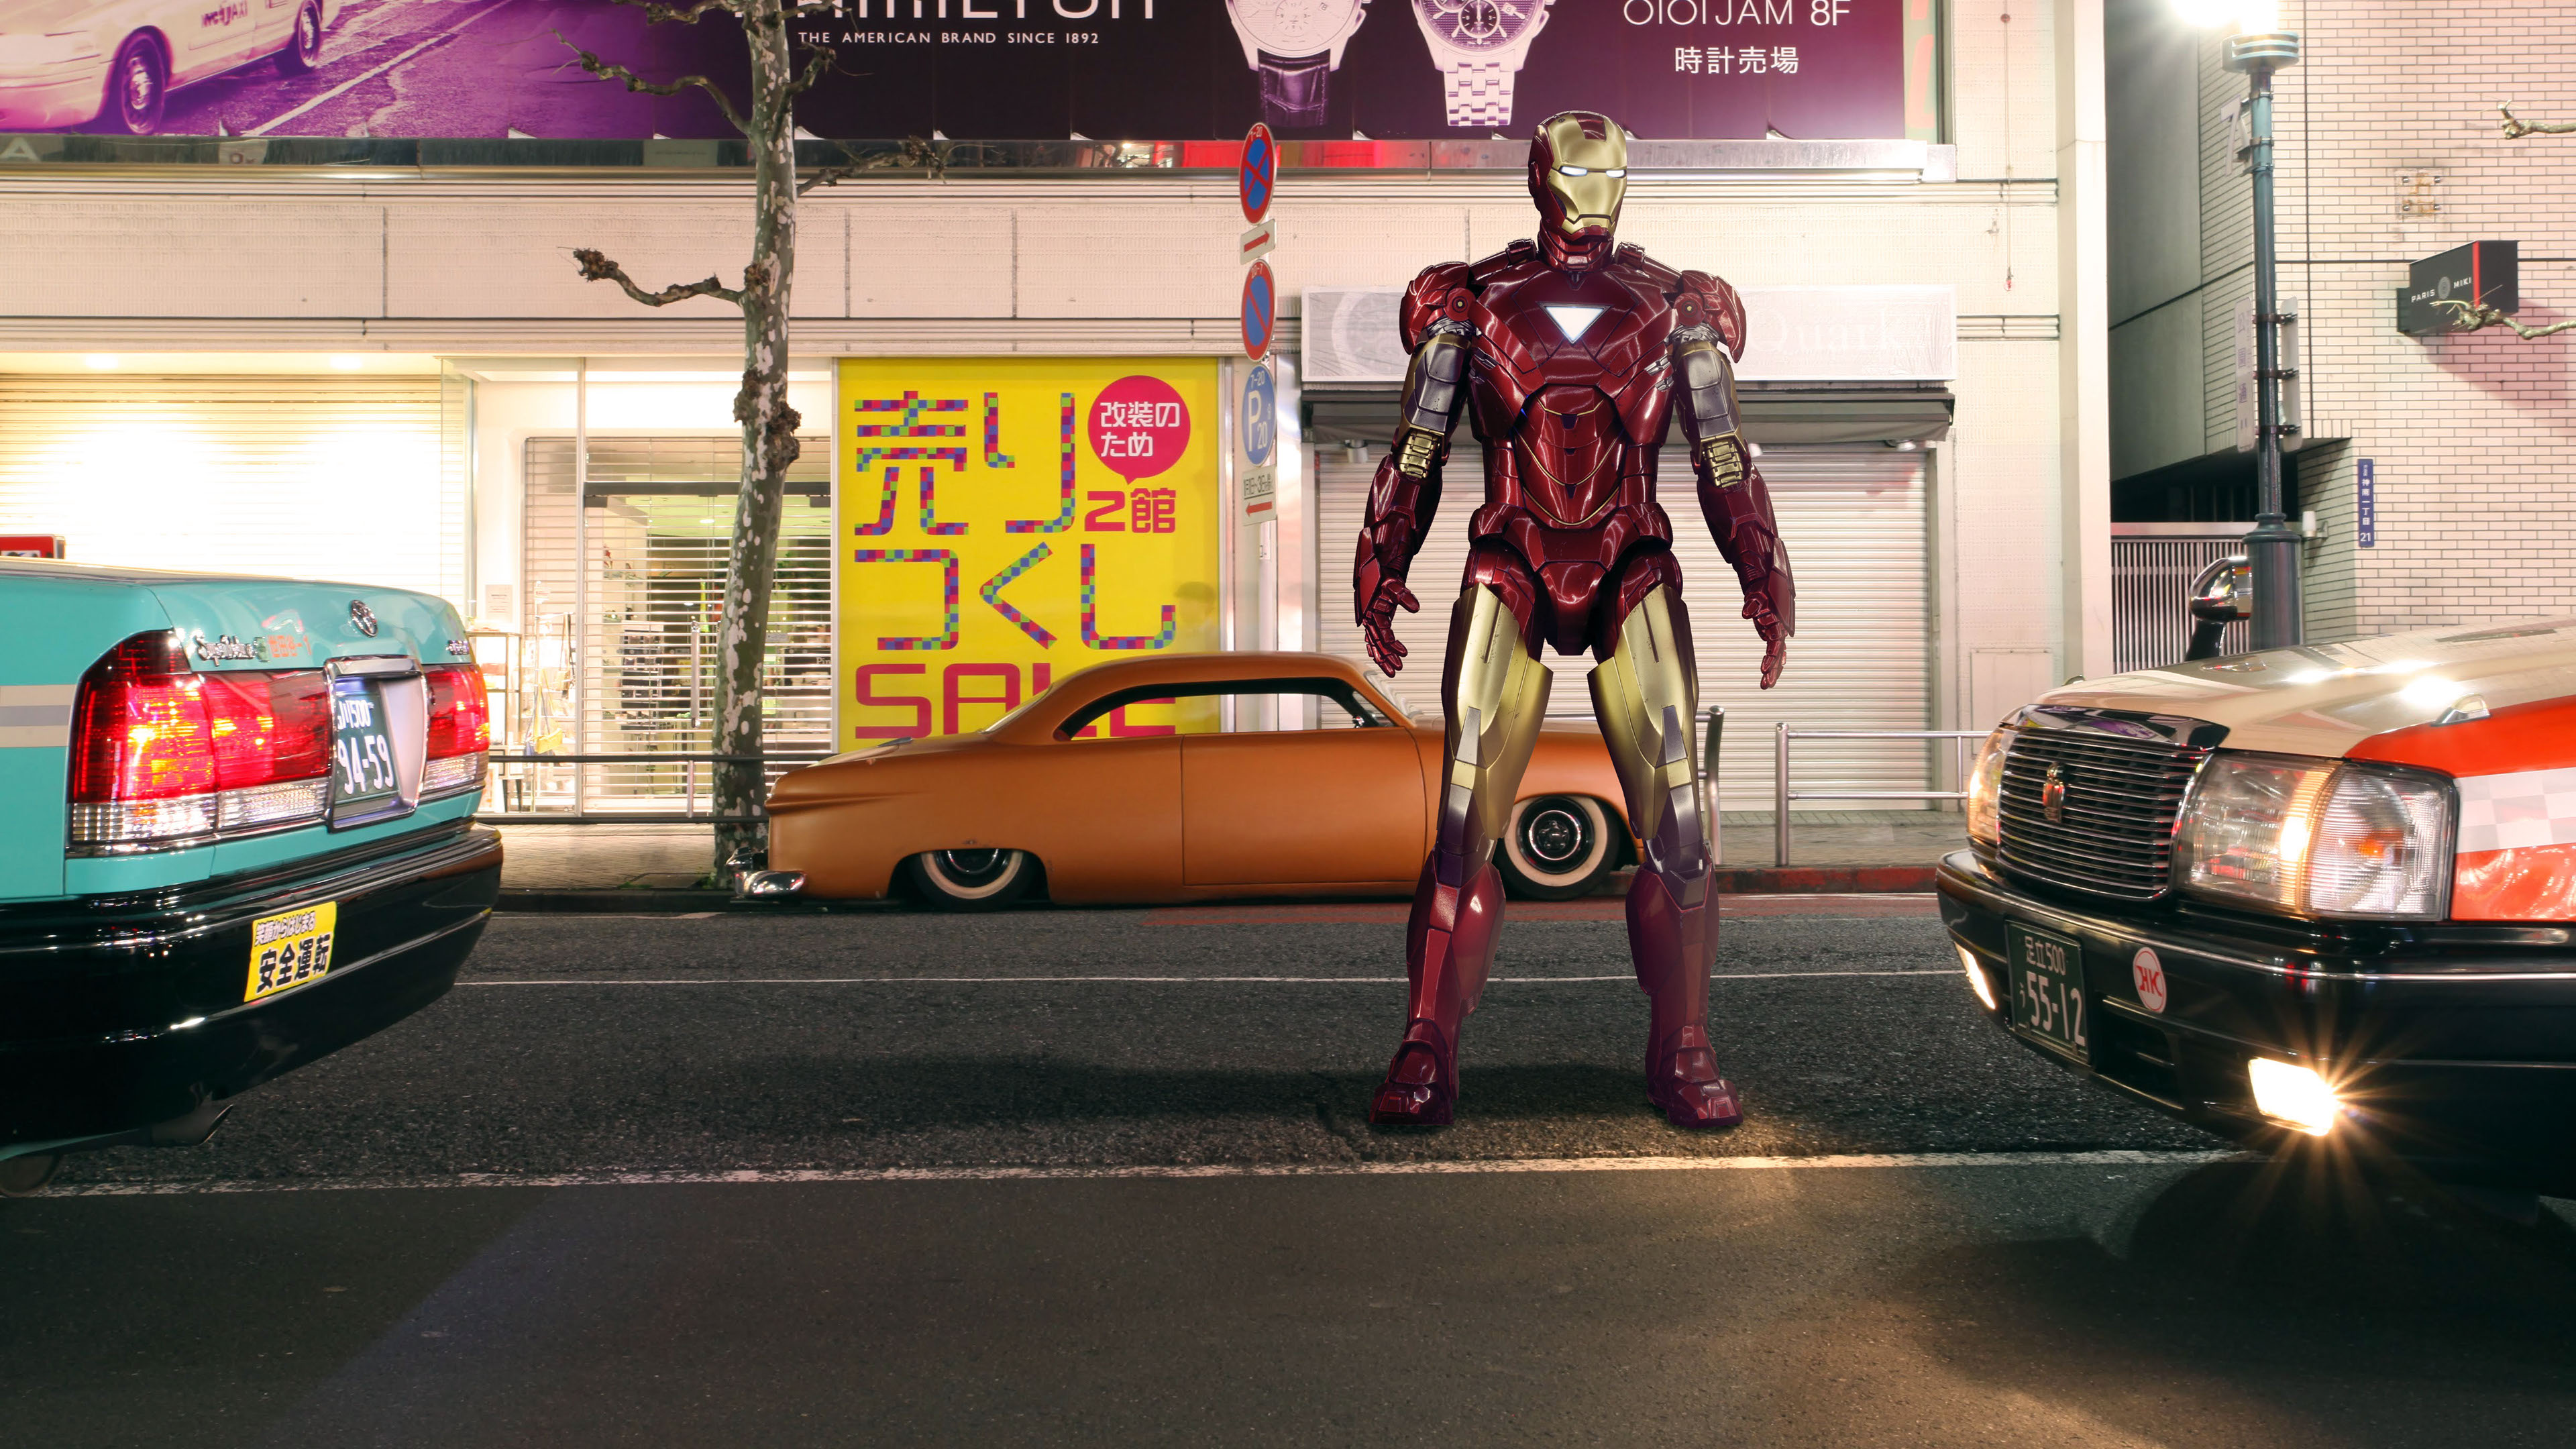 iron man standing on street 4k 1557260449 - Iron Man Standing On Street 4k - superheroes wallpapers, iron man wallpapers, hd-wallpapers, digital art wallpapers, behance wallpapers, artwork wallpapers, artist wallpapers, 4k-wallpapers